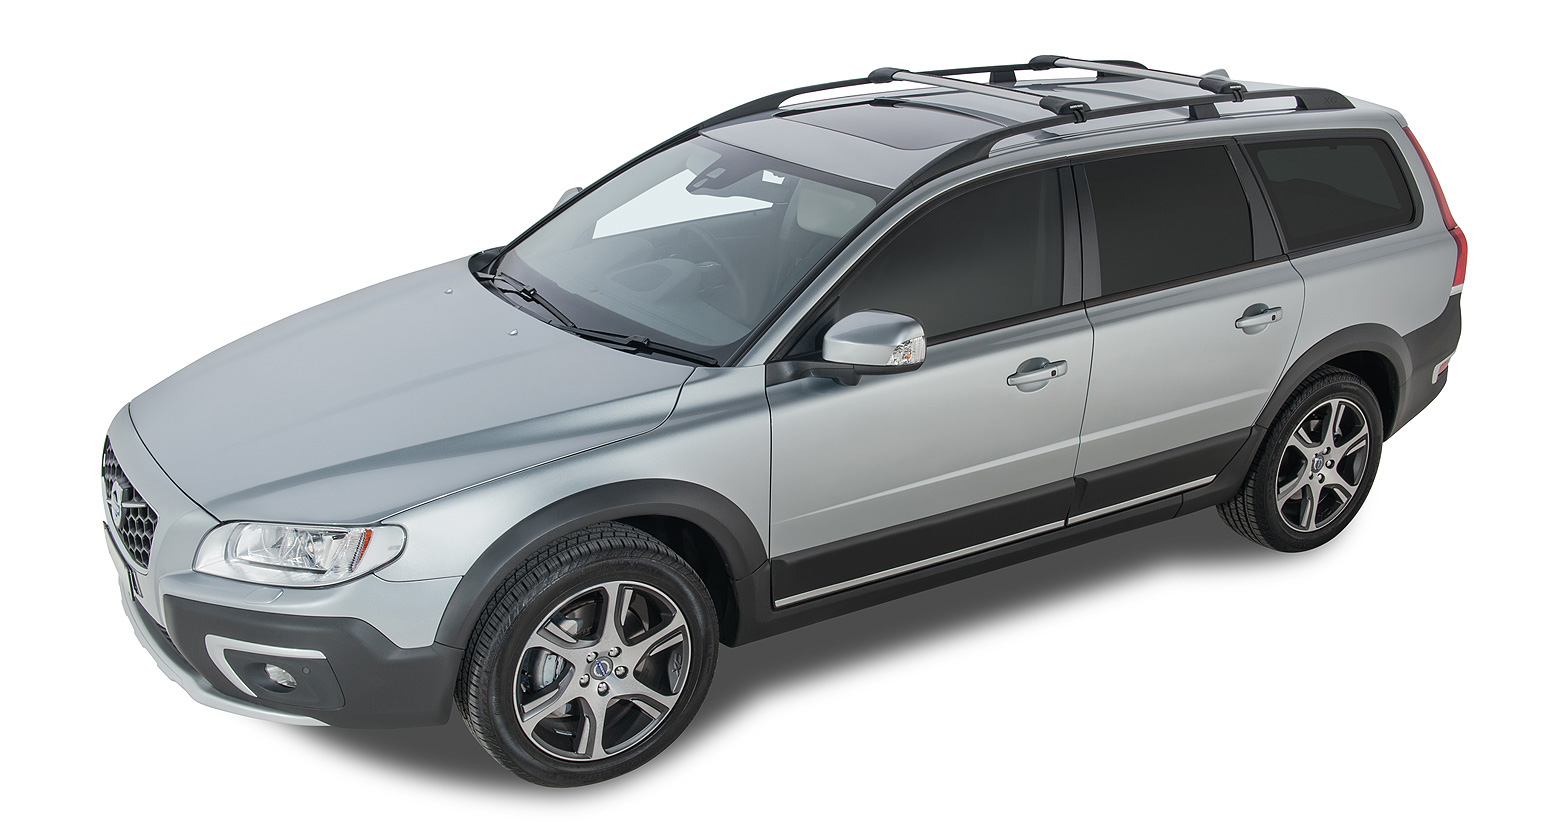 VOLVO XC70 4dr Wagon With Roof Rails 01/01 To 12/16, View Options ...